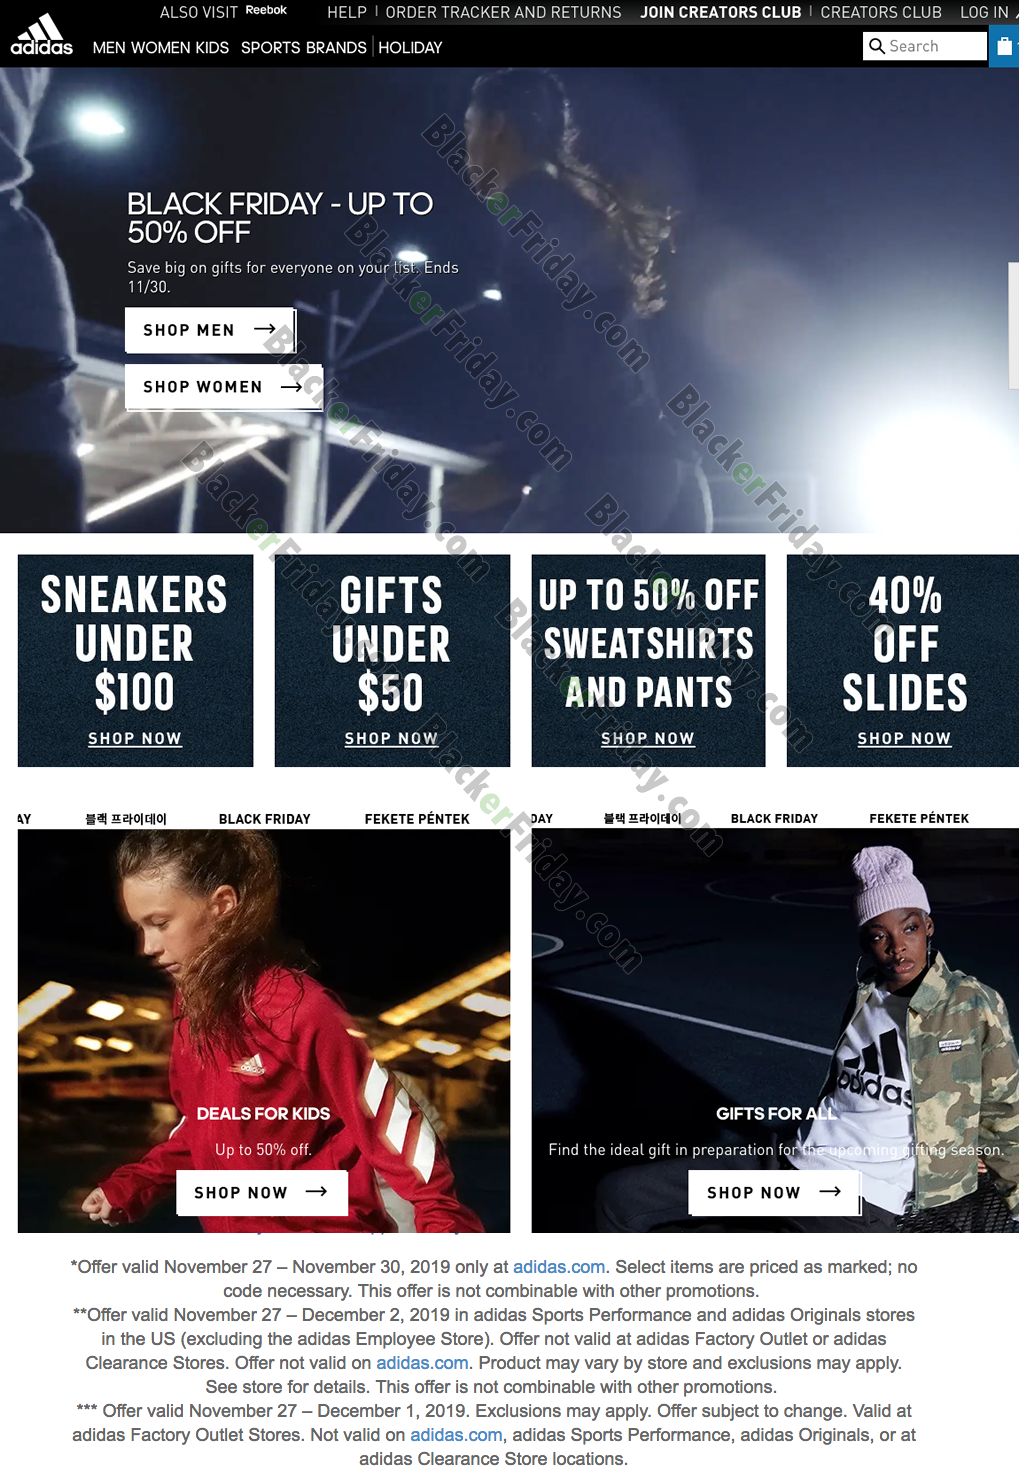 Adidas Black Friday 2021 Sale What To Expect Blacker Friday